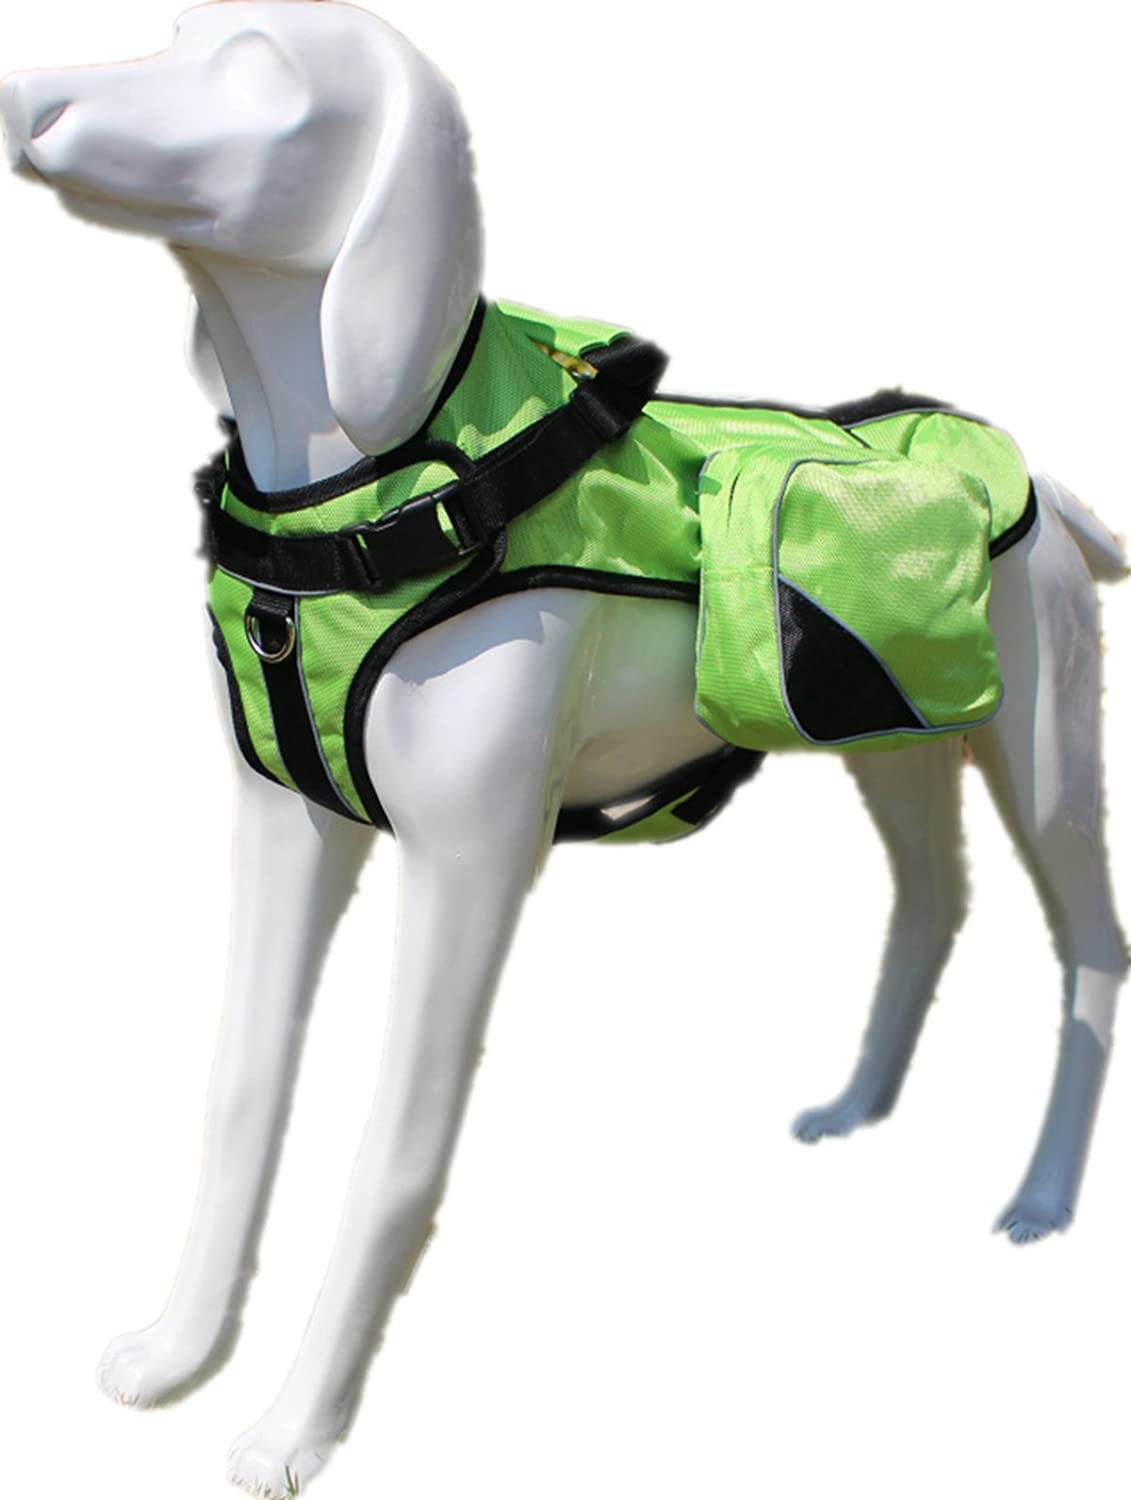 Green S Green S haoyueer No Pull Harness Therapy Dog Service Vest Removable Saddle Bag Dogs Backpack Harness(Green,S)